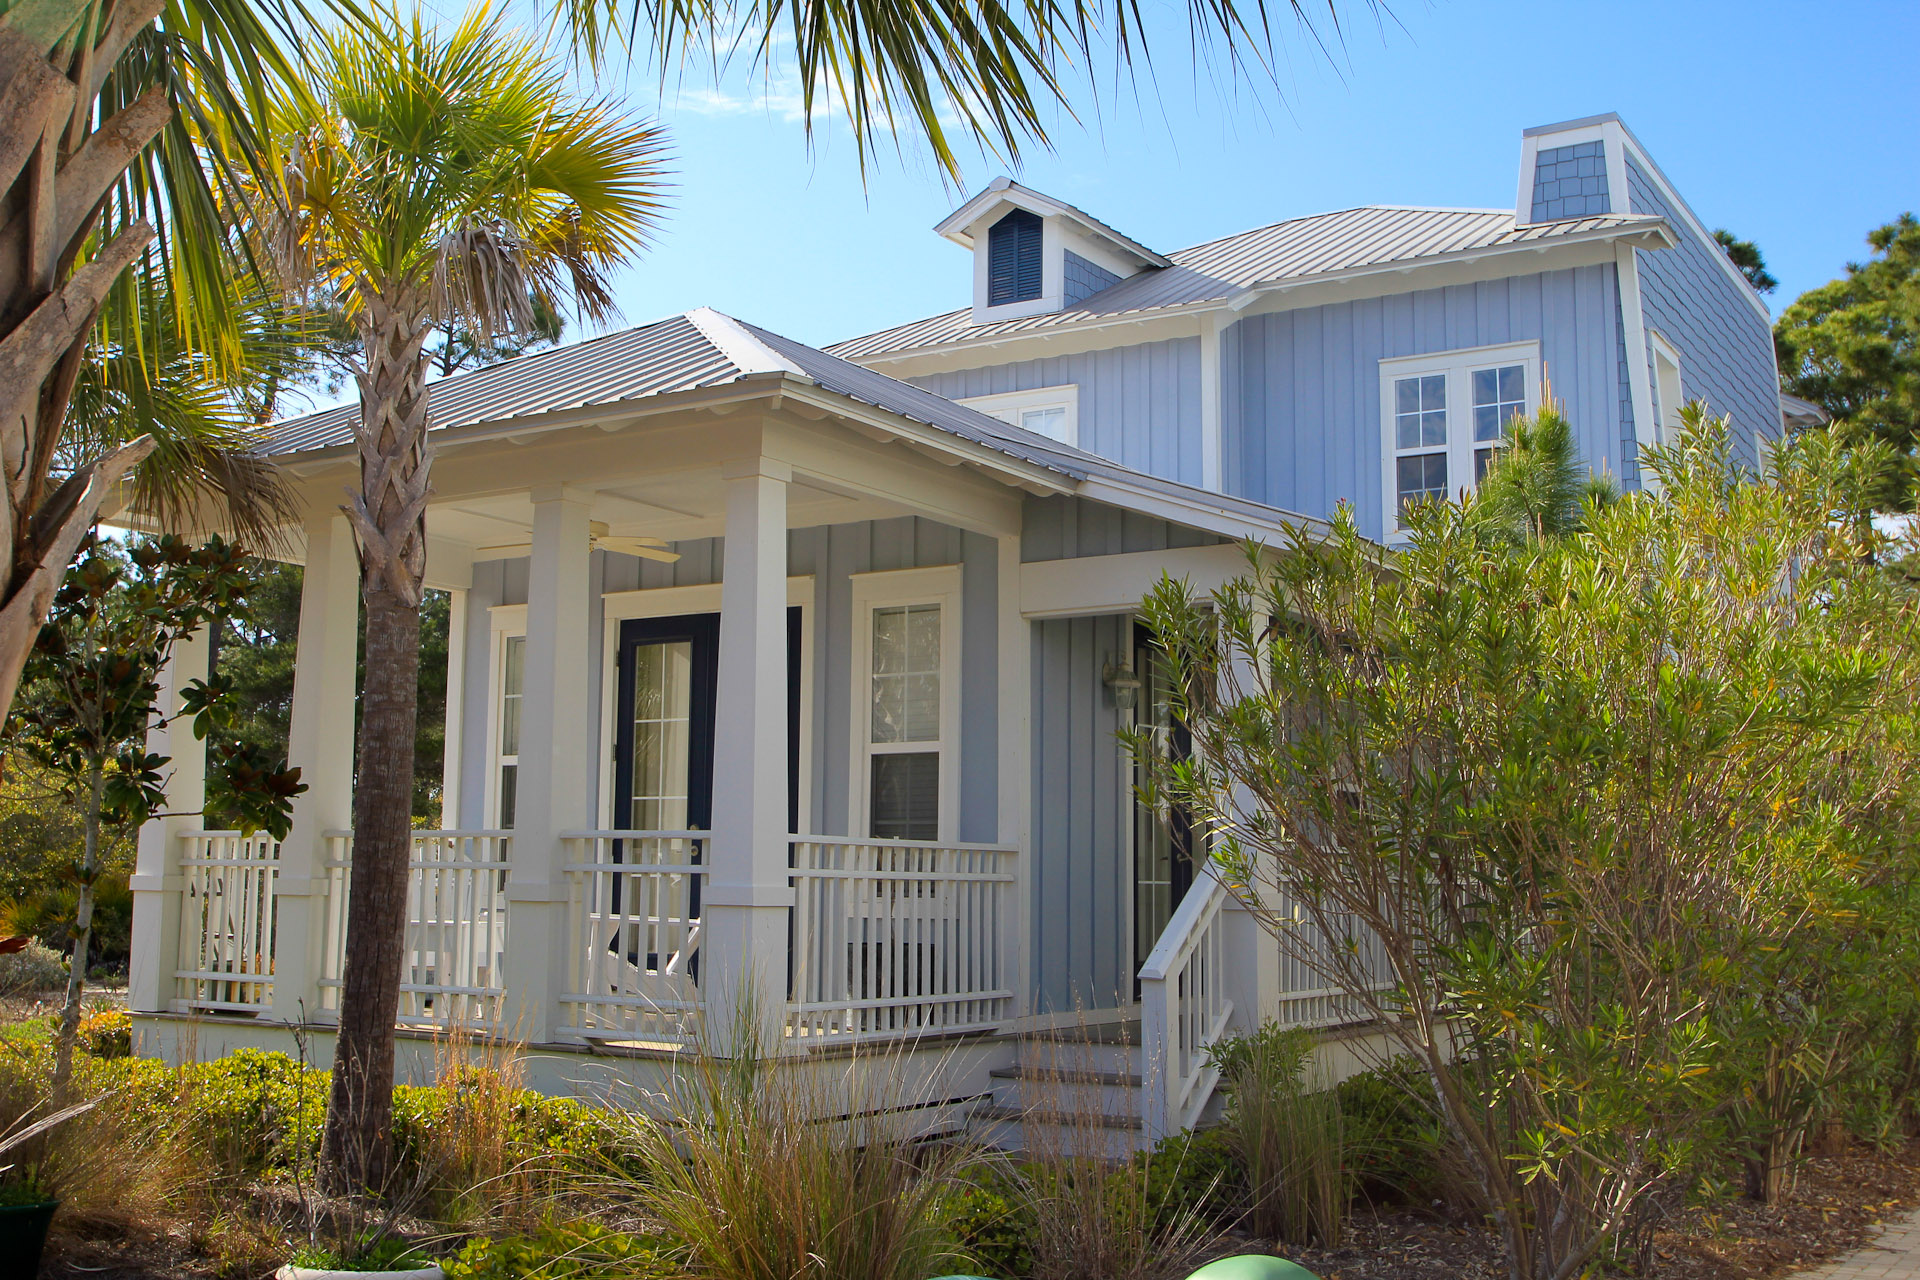 30a under 500k at seacrest beach south walton fl homes for sale rh southwaltonluxuryhomes com rosemary beach cottage company rosemary beach cottage rental agency